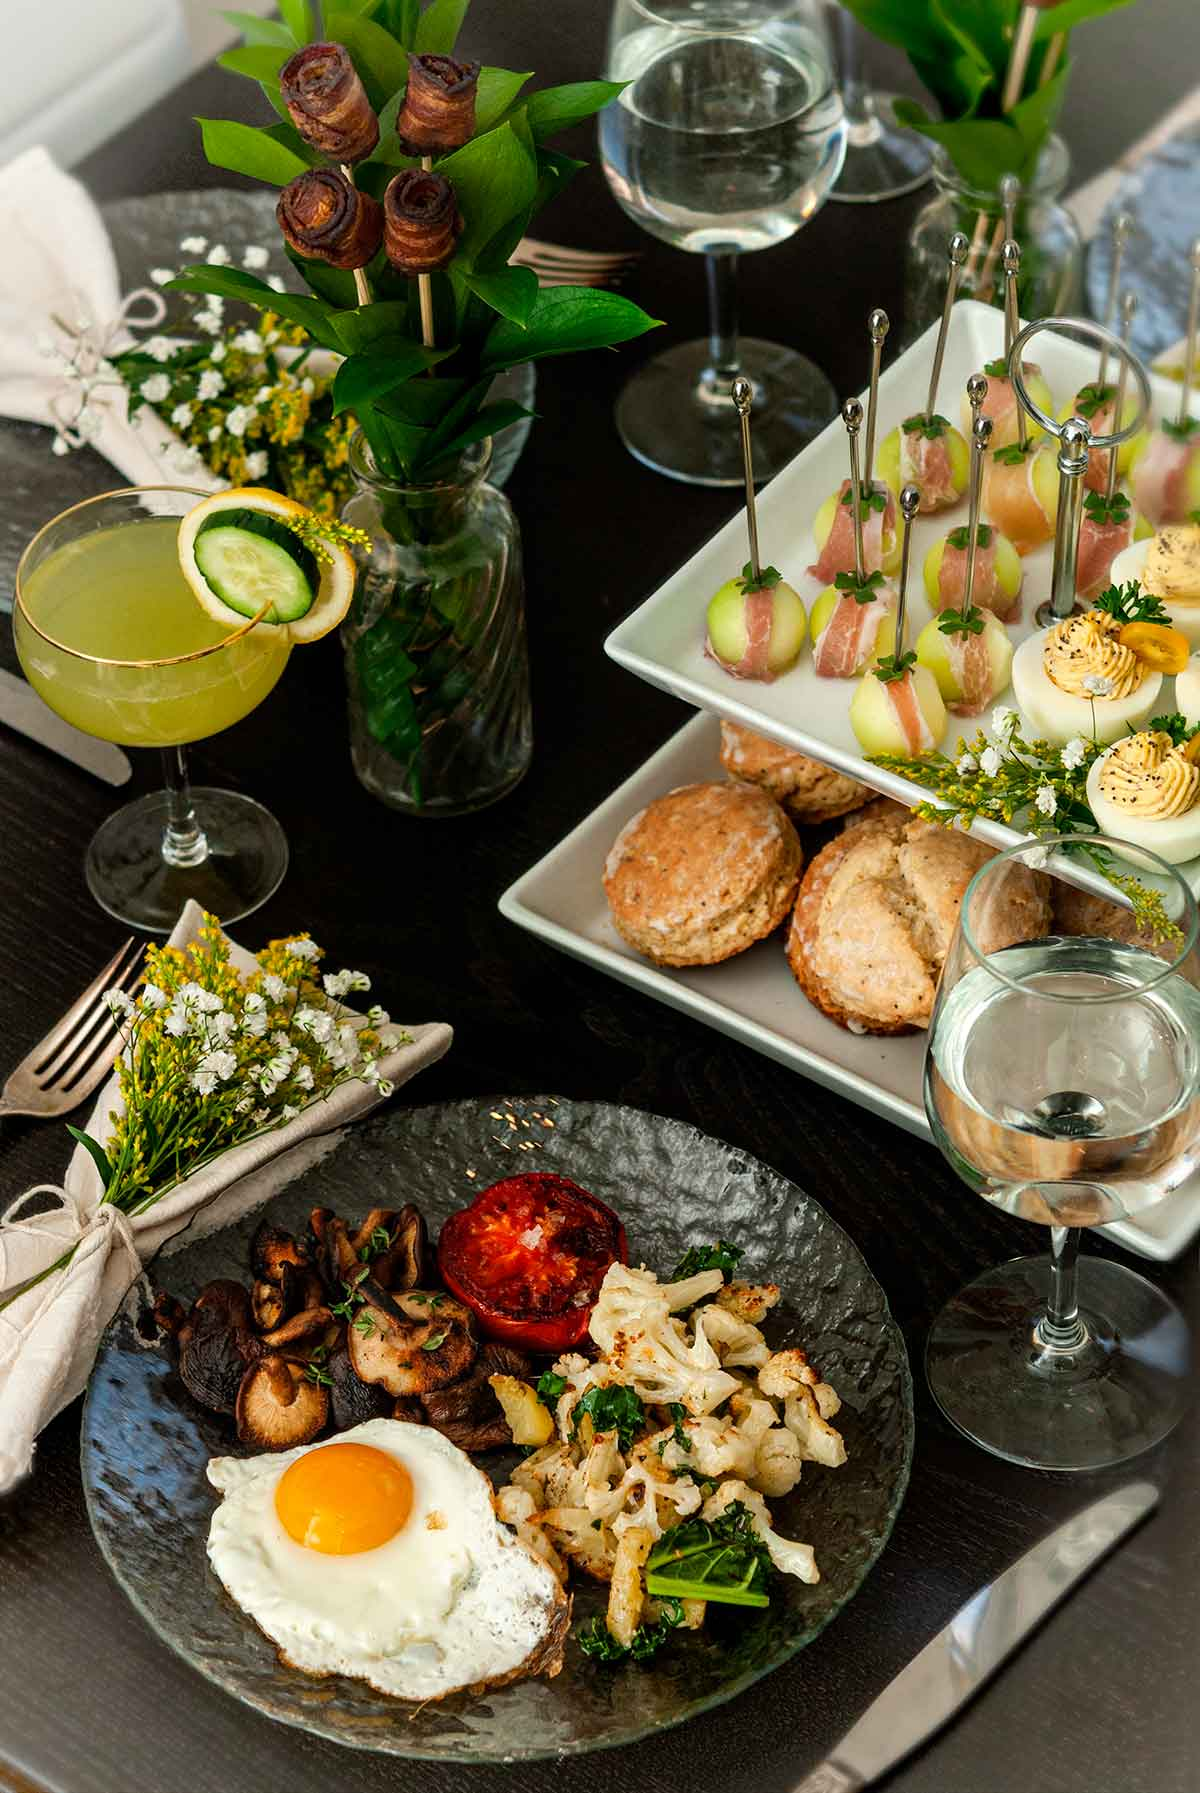 An ornately decorated table with breakfast foods, glasses of water and cocktails.